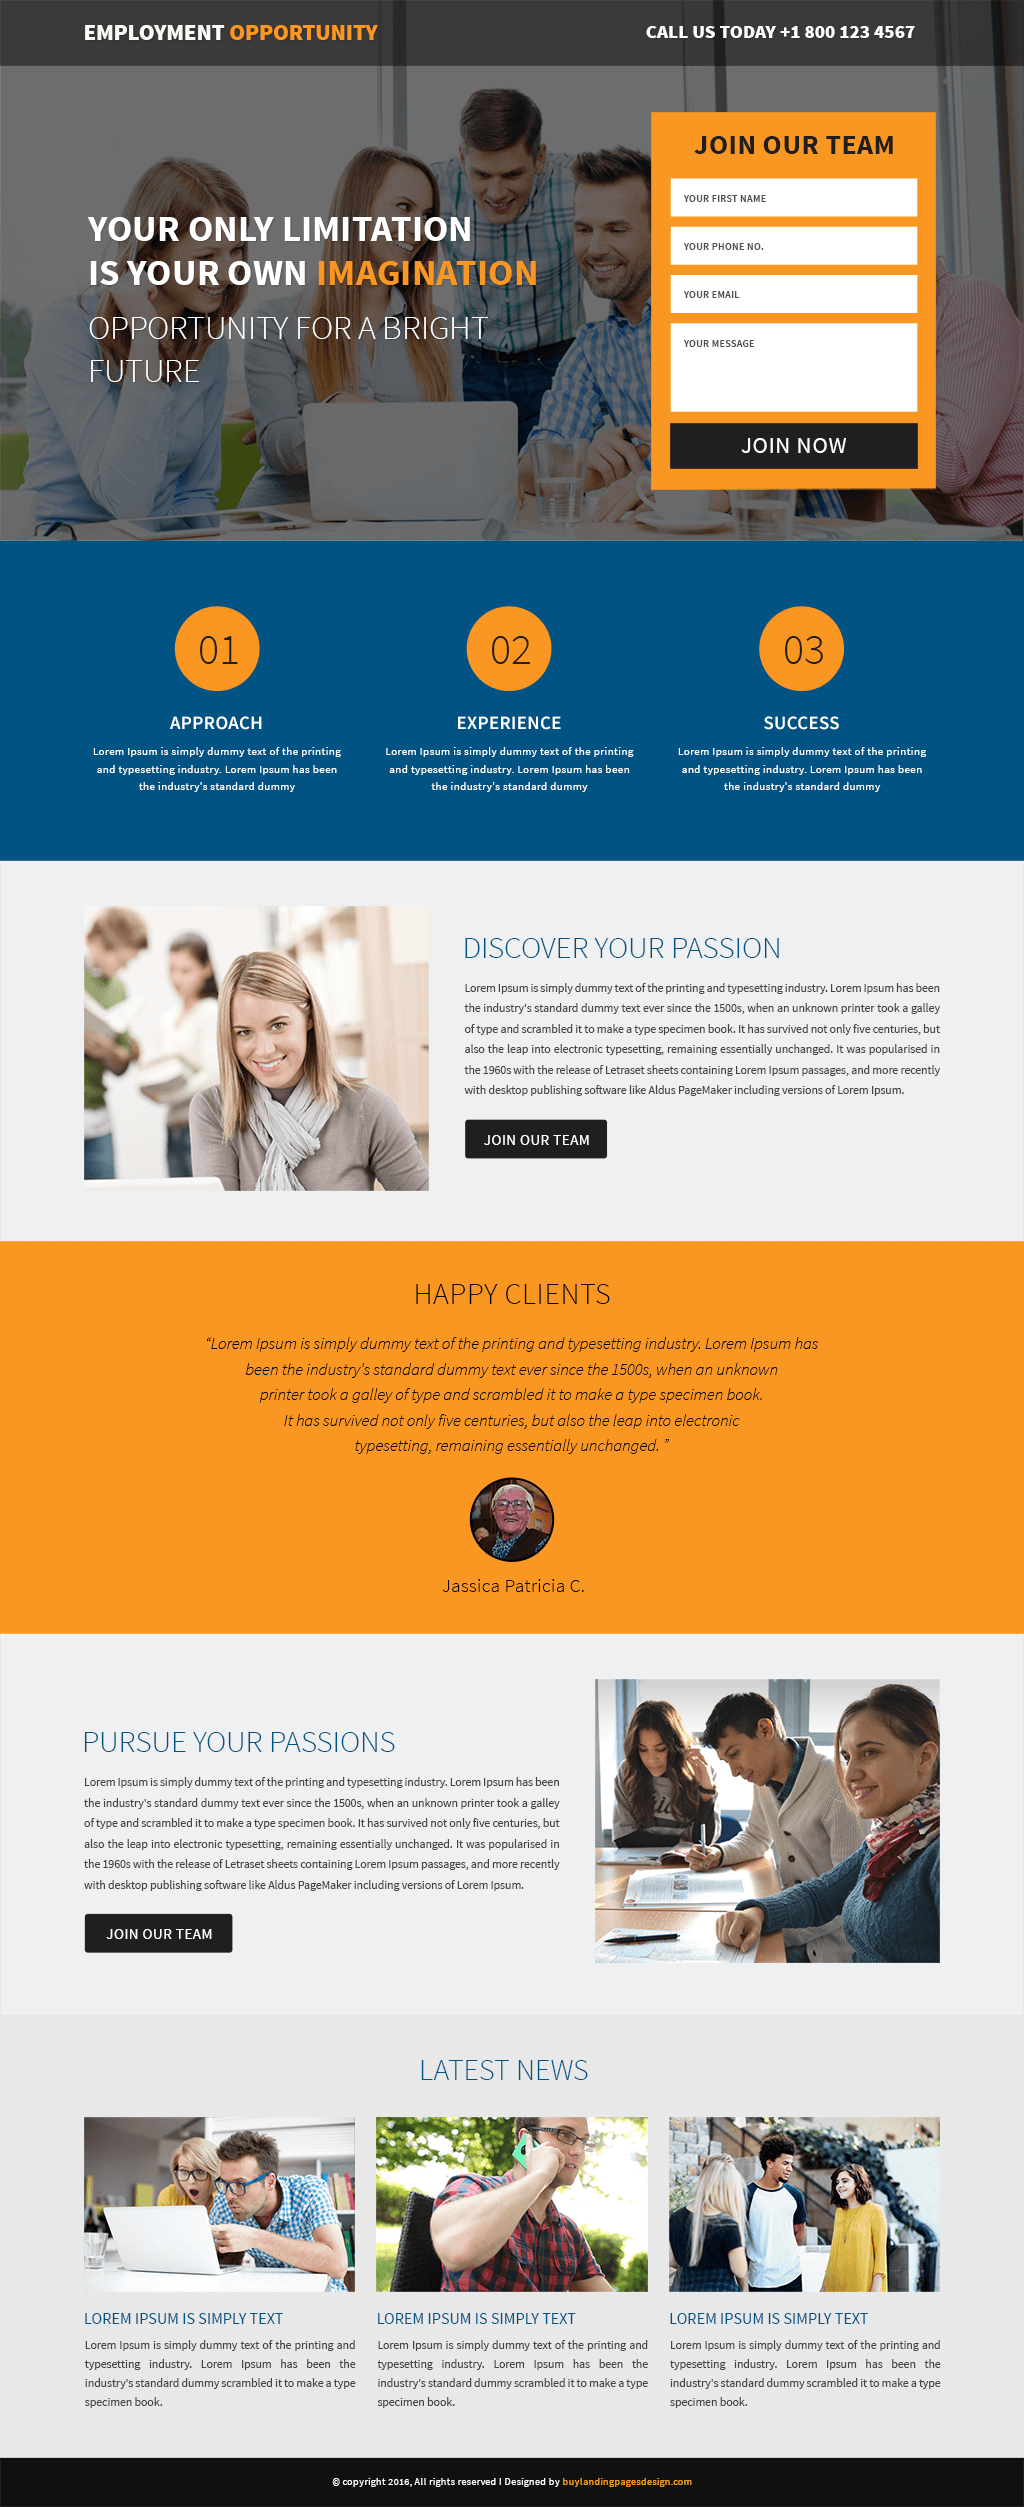 Employment Opportunity responsive landing page template